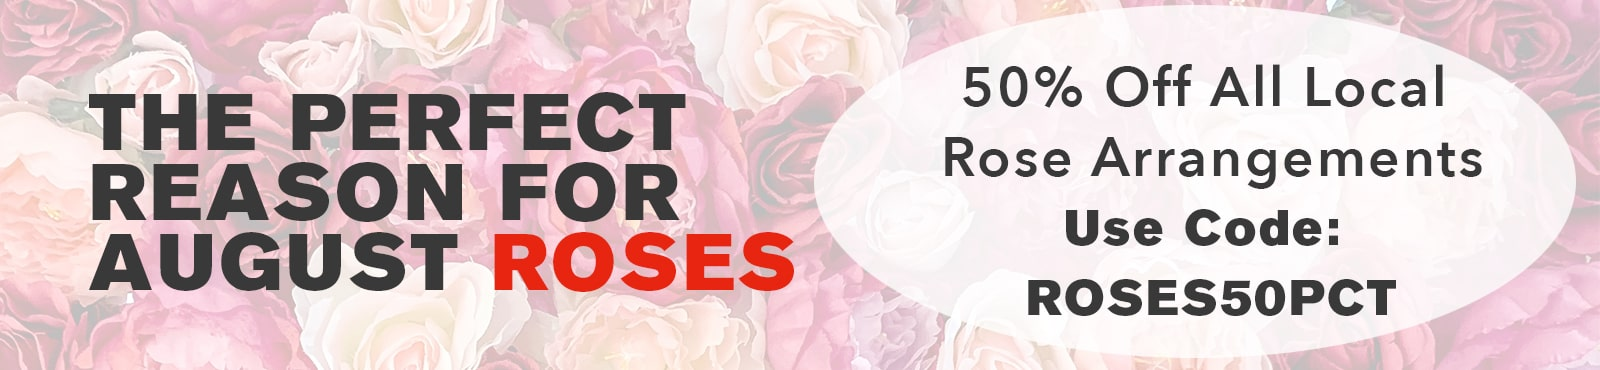 All Rose arrangements are 50% OFF, use the code ROSES50PCT